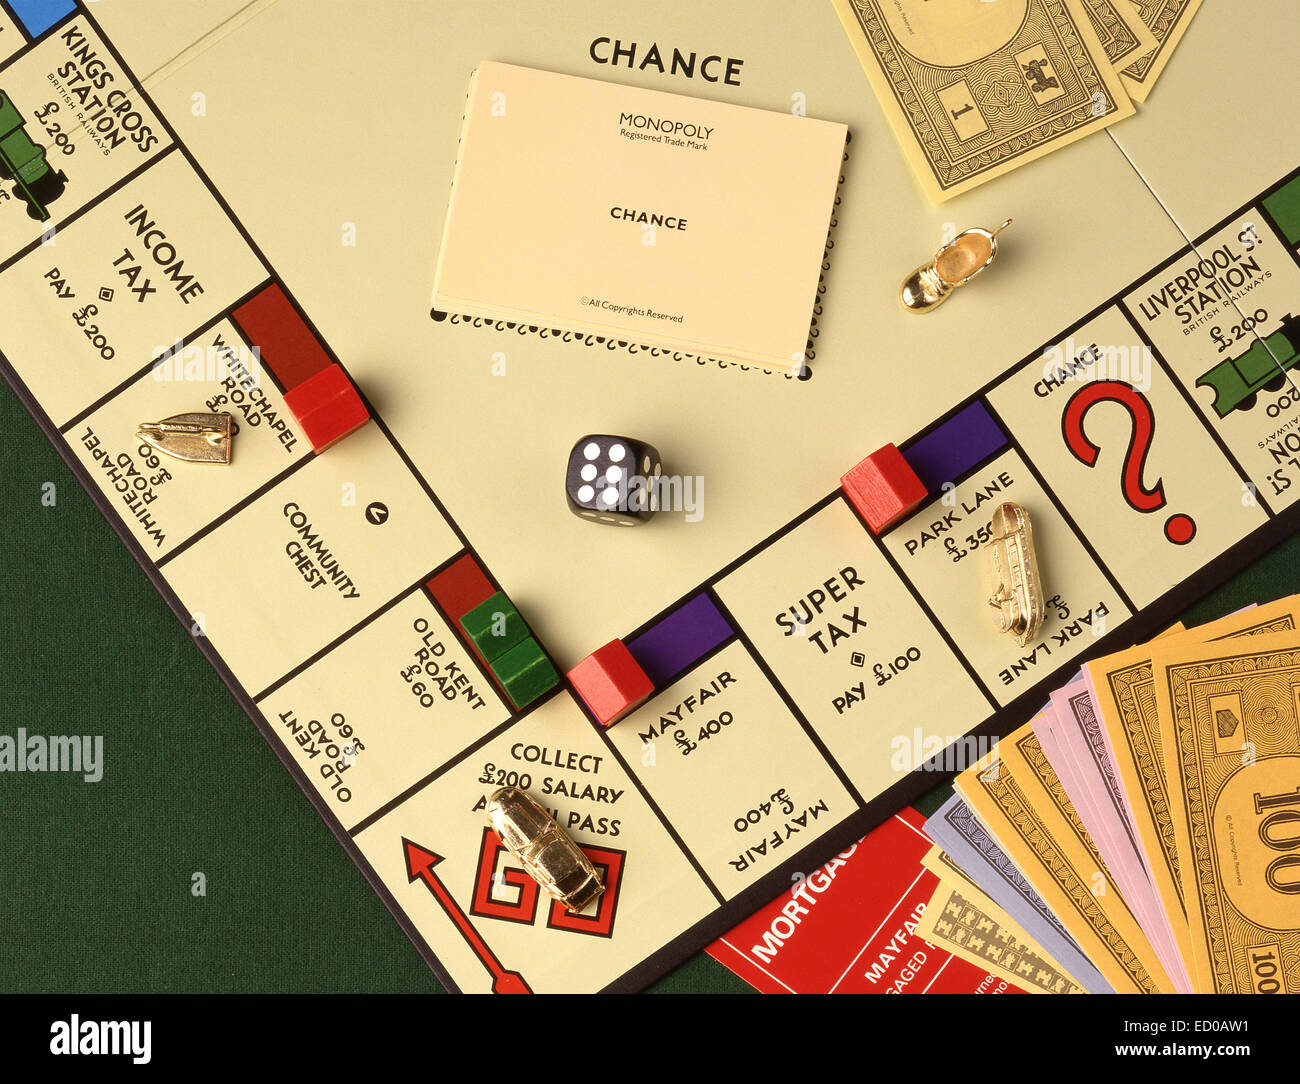 Monopoly board game with money, notes, counters and dice in studio setting - Stock Image